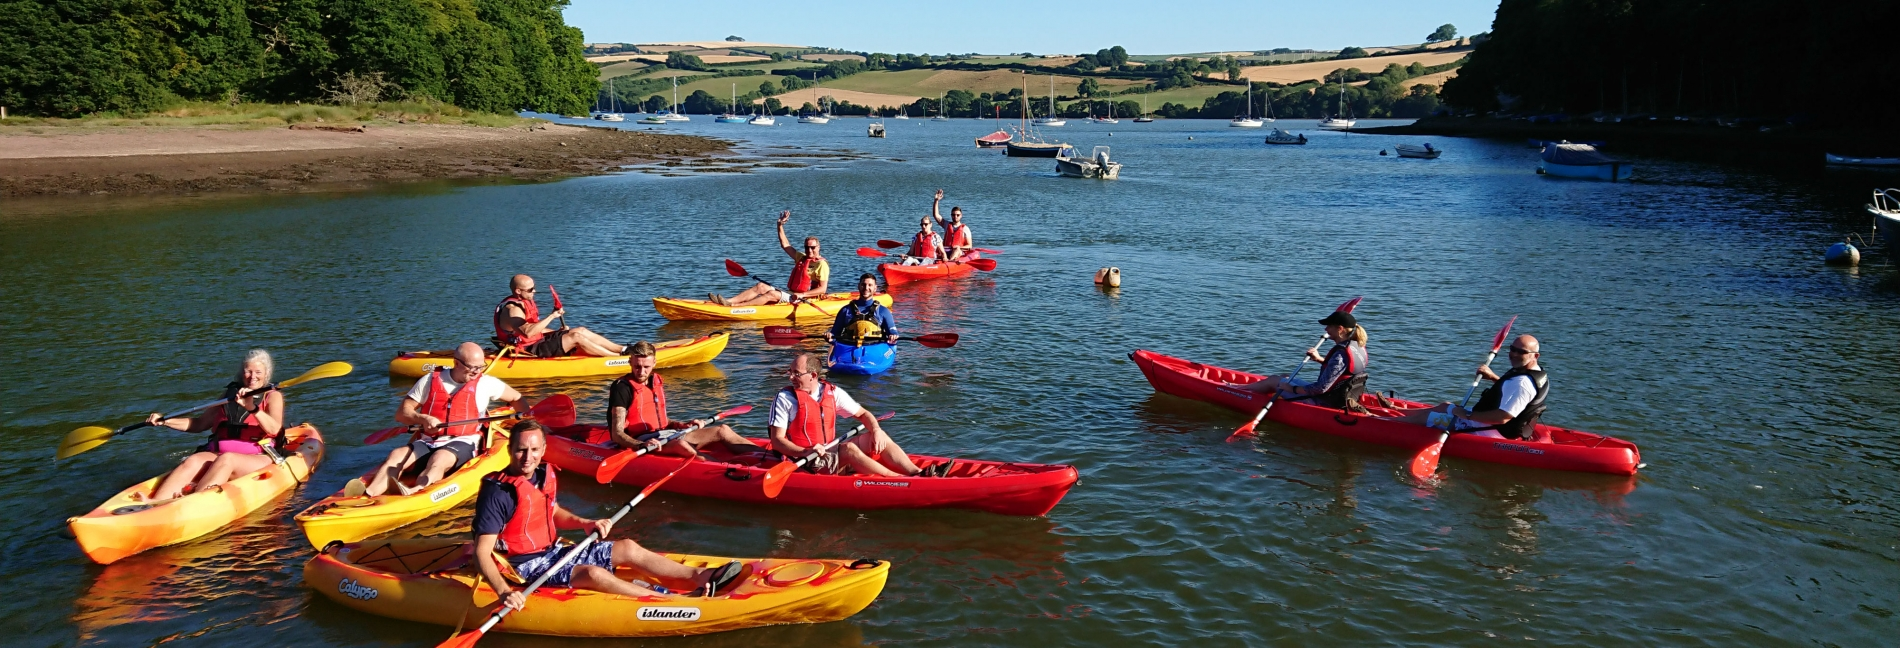 Kayak Hire Devon with Totnes Kayaks